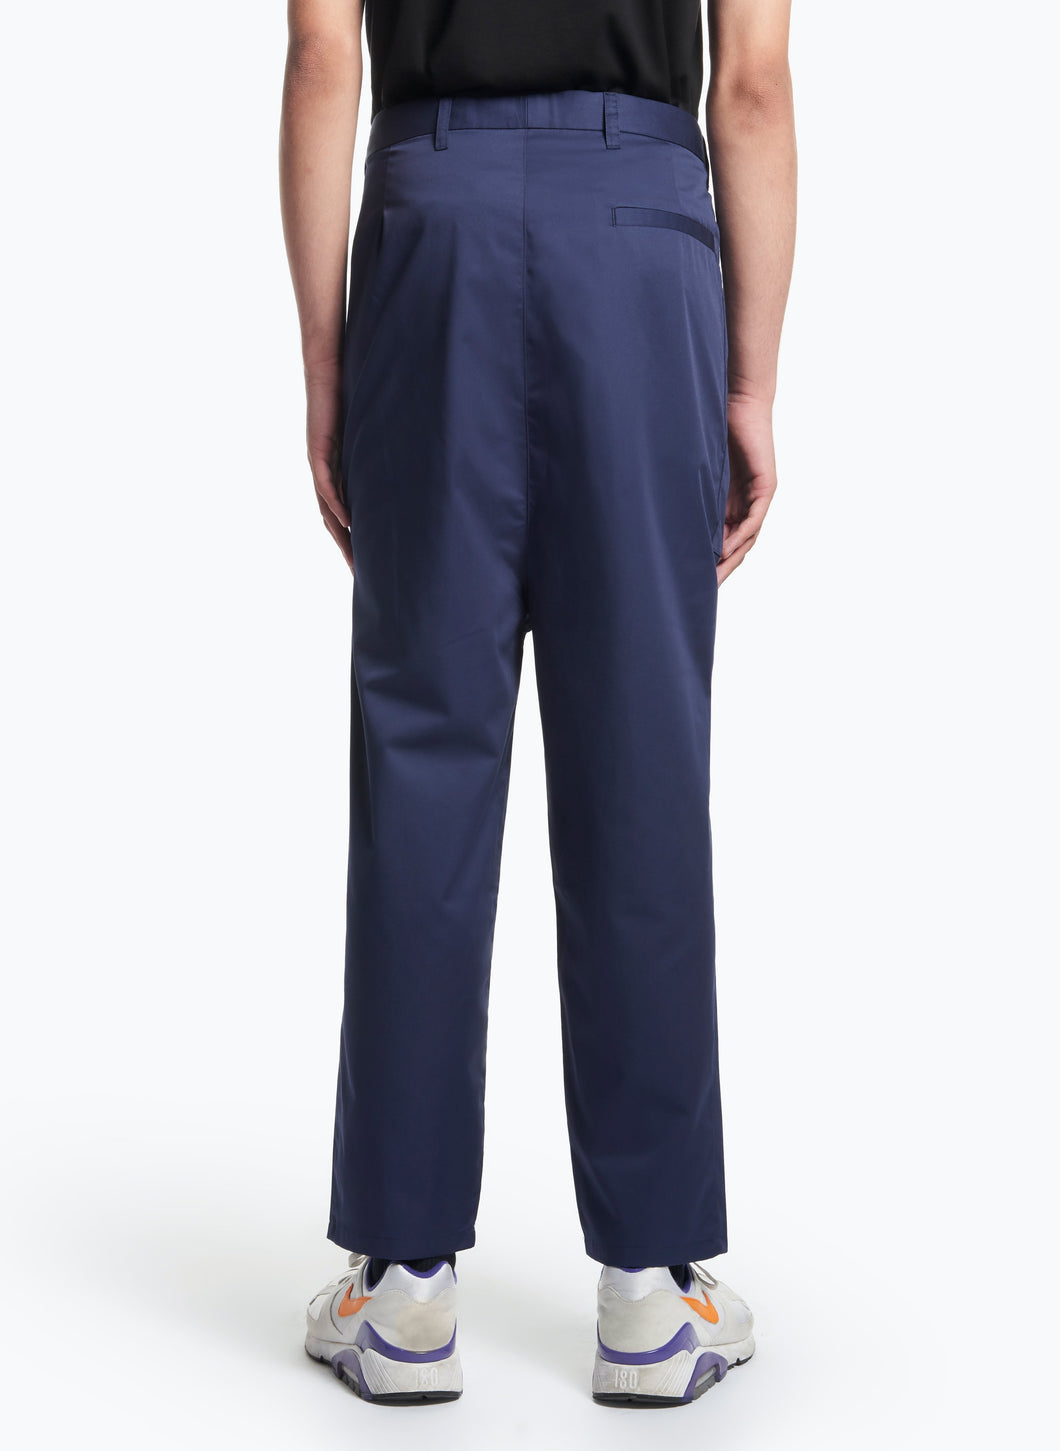 Pants with Pleated Patch Pockets in Navy Blue Pima Cotton